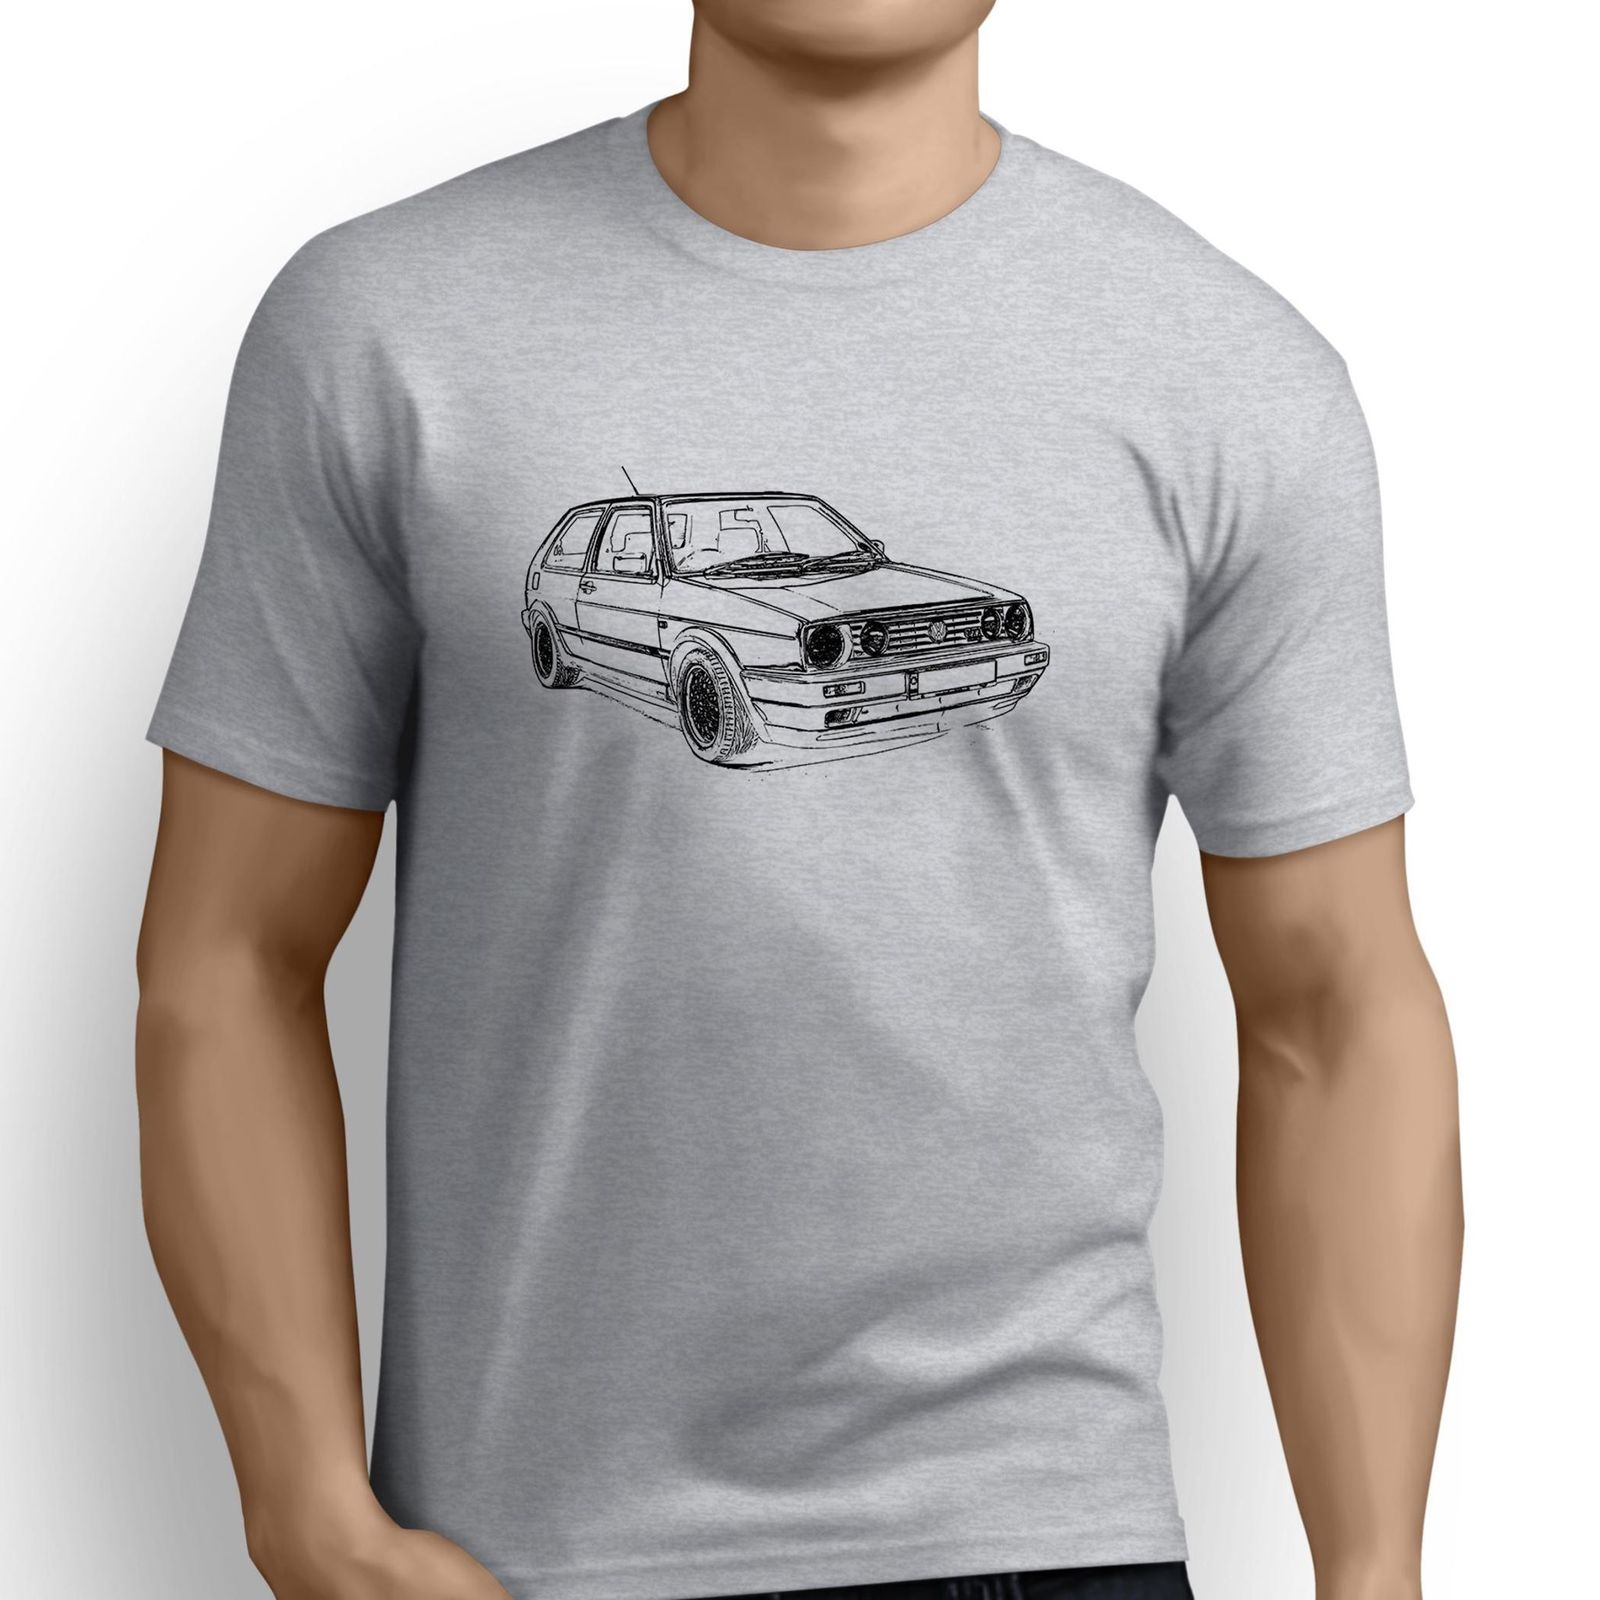 Brand Clothing 2018 Male Harajuku Top Fitness Brand Clothing Japanese Car Fans Golfs Gti Mk2 Inspired Car Christian T Shirt